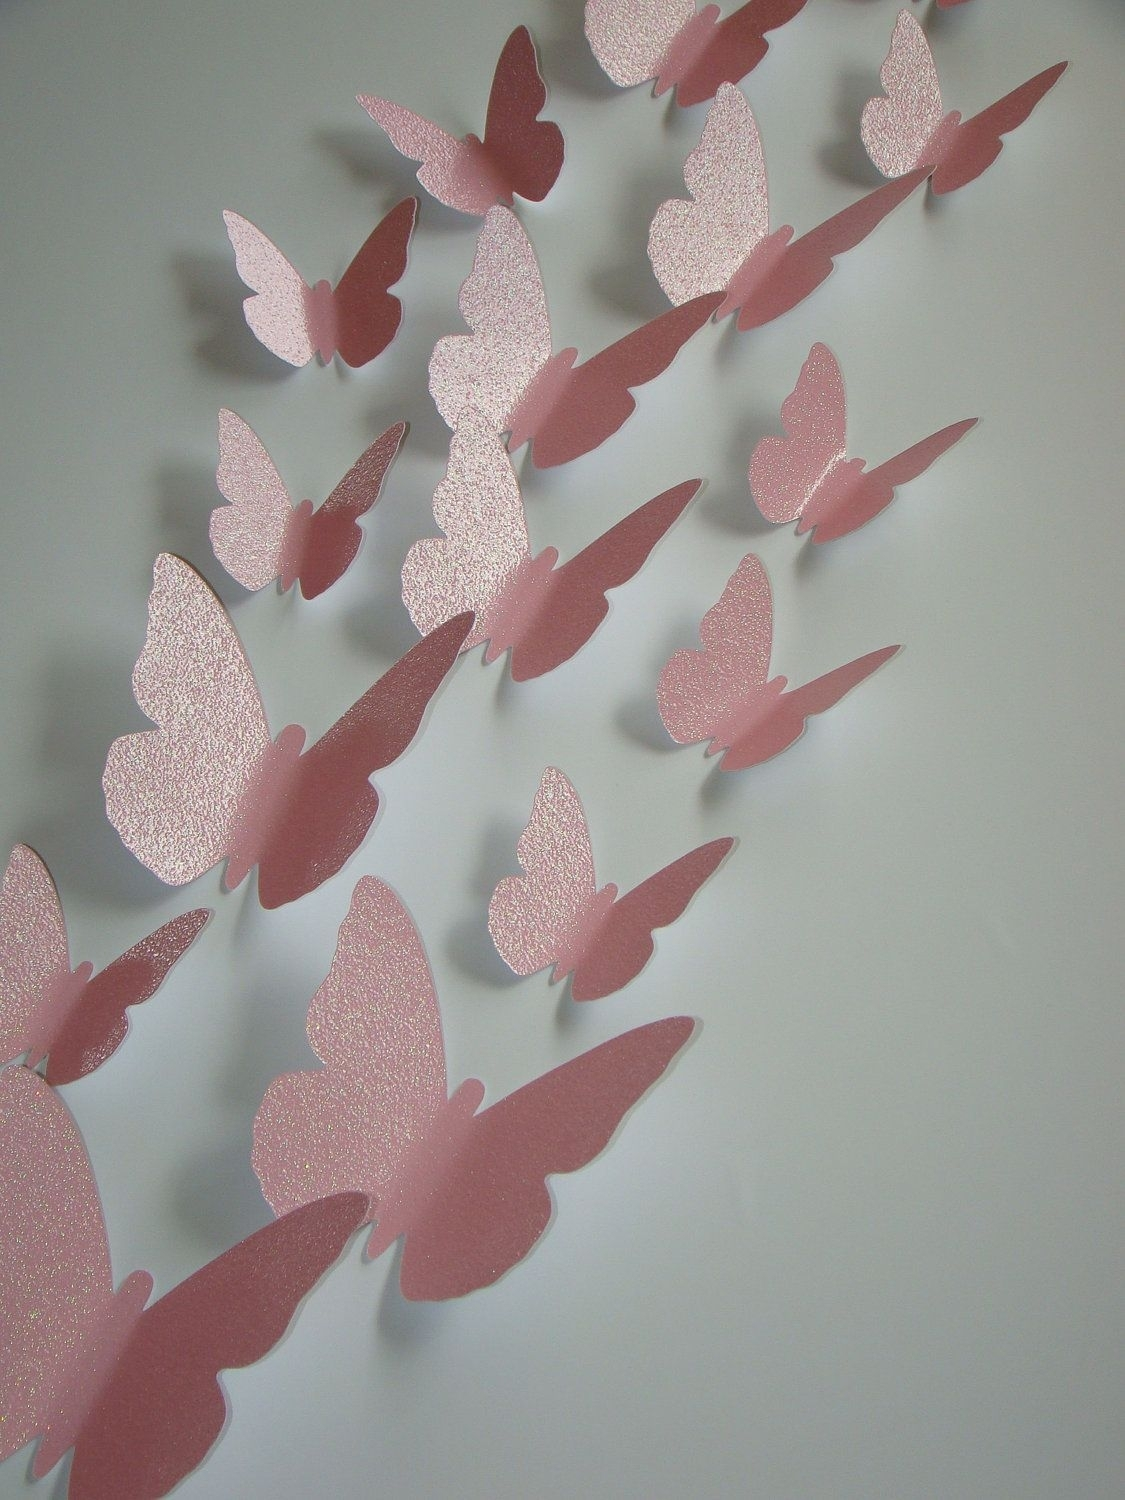 3 D Wall Art You Can Customize Cute For A Nursery And Half Of Regarding 3 Dimensional Wall Art (View 6 of 10)